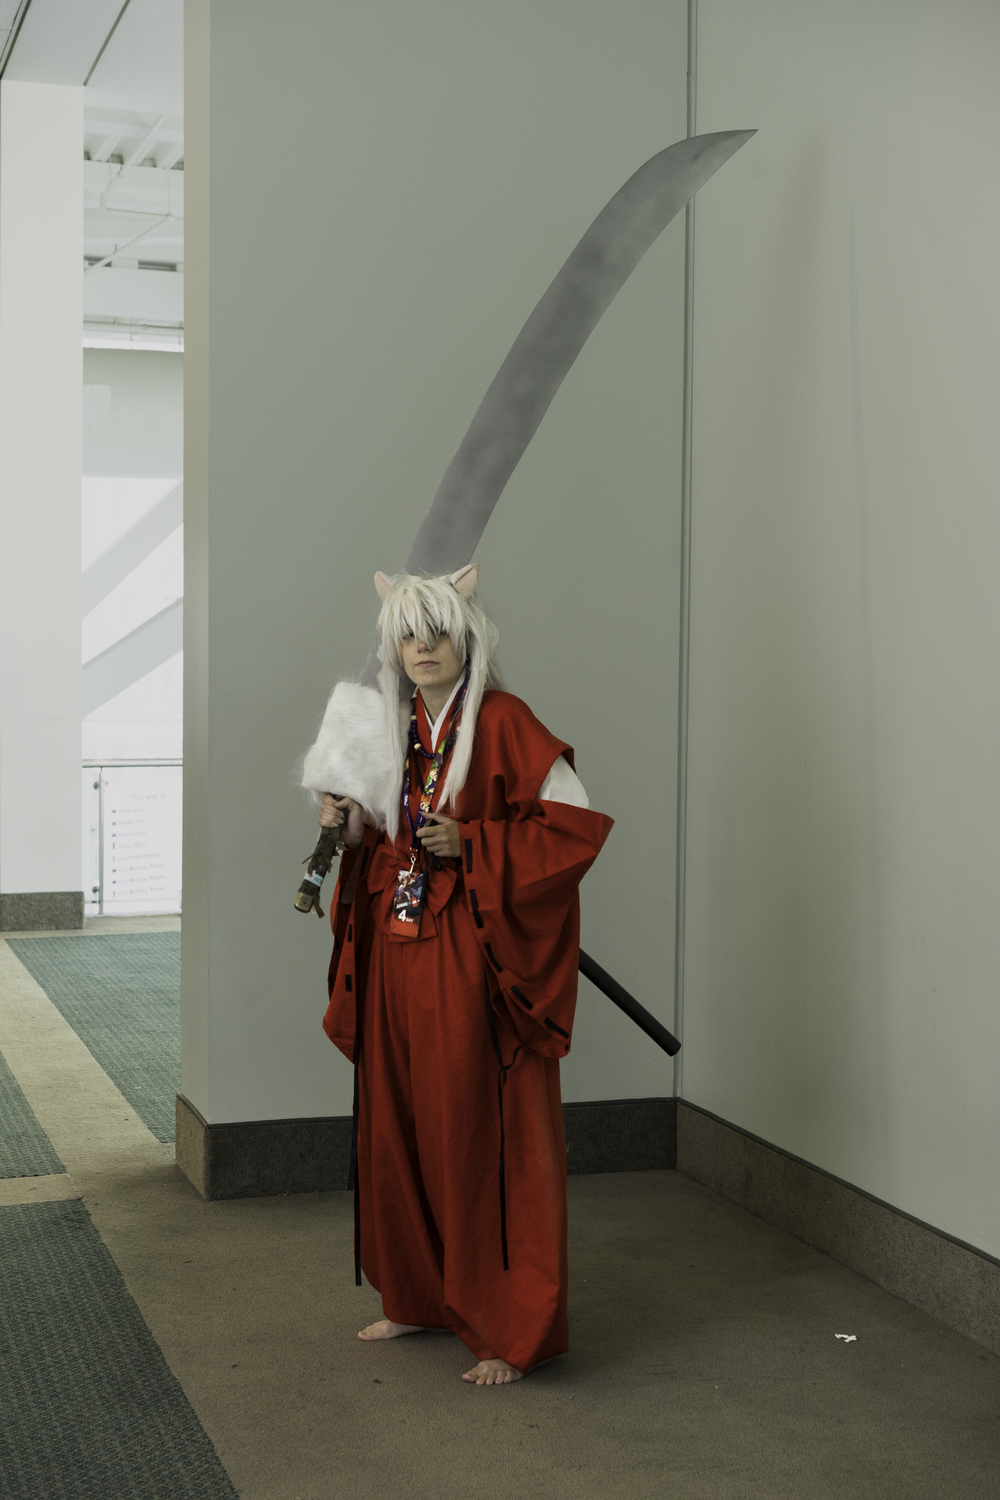 Sword_Anime_Expo__July4_2015.jpg